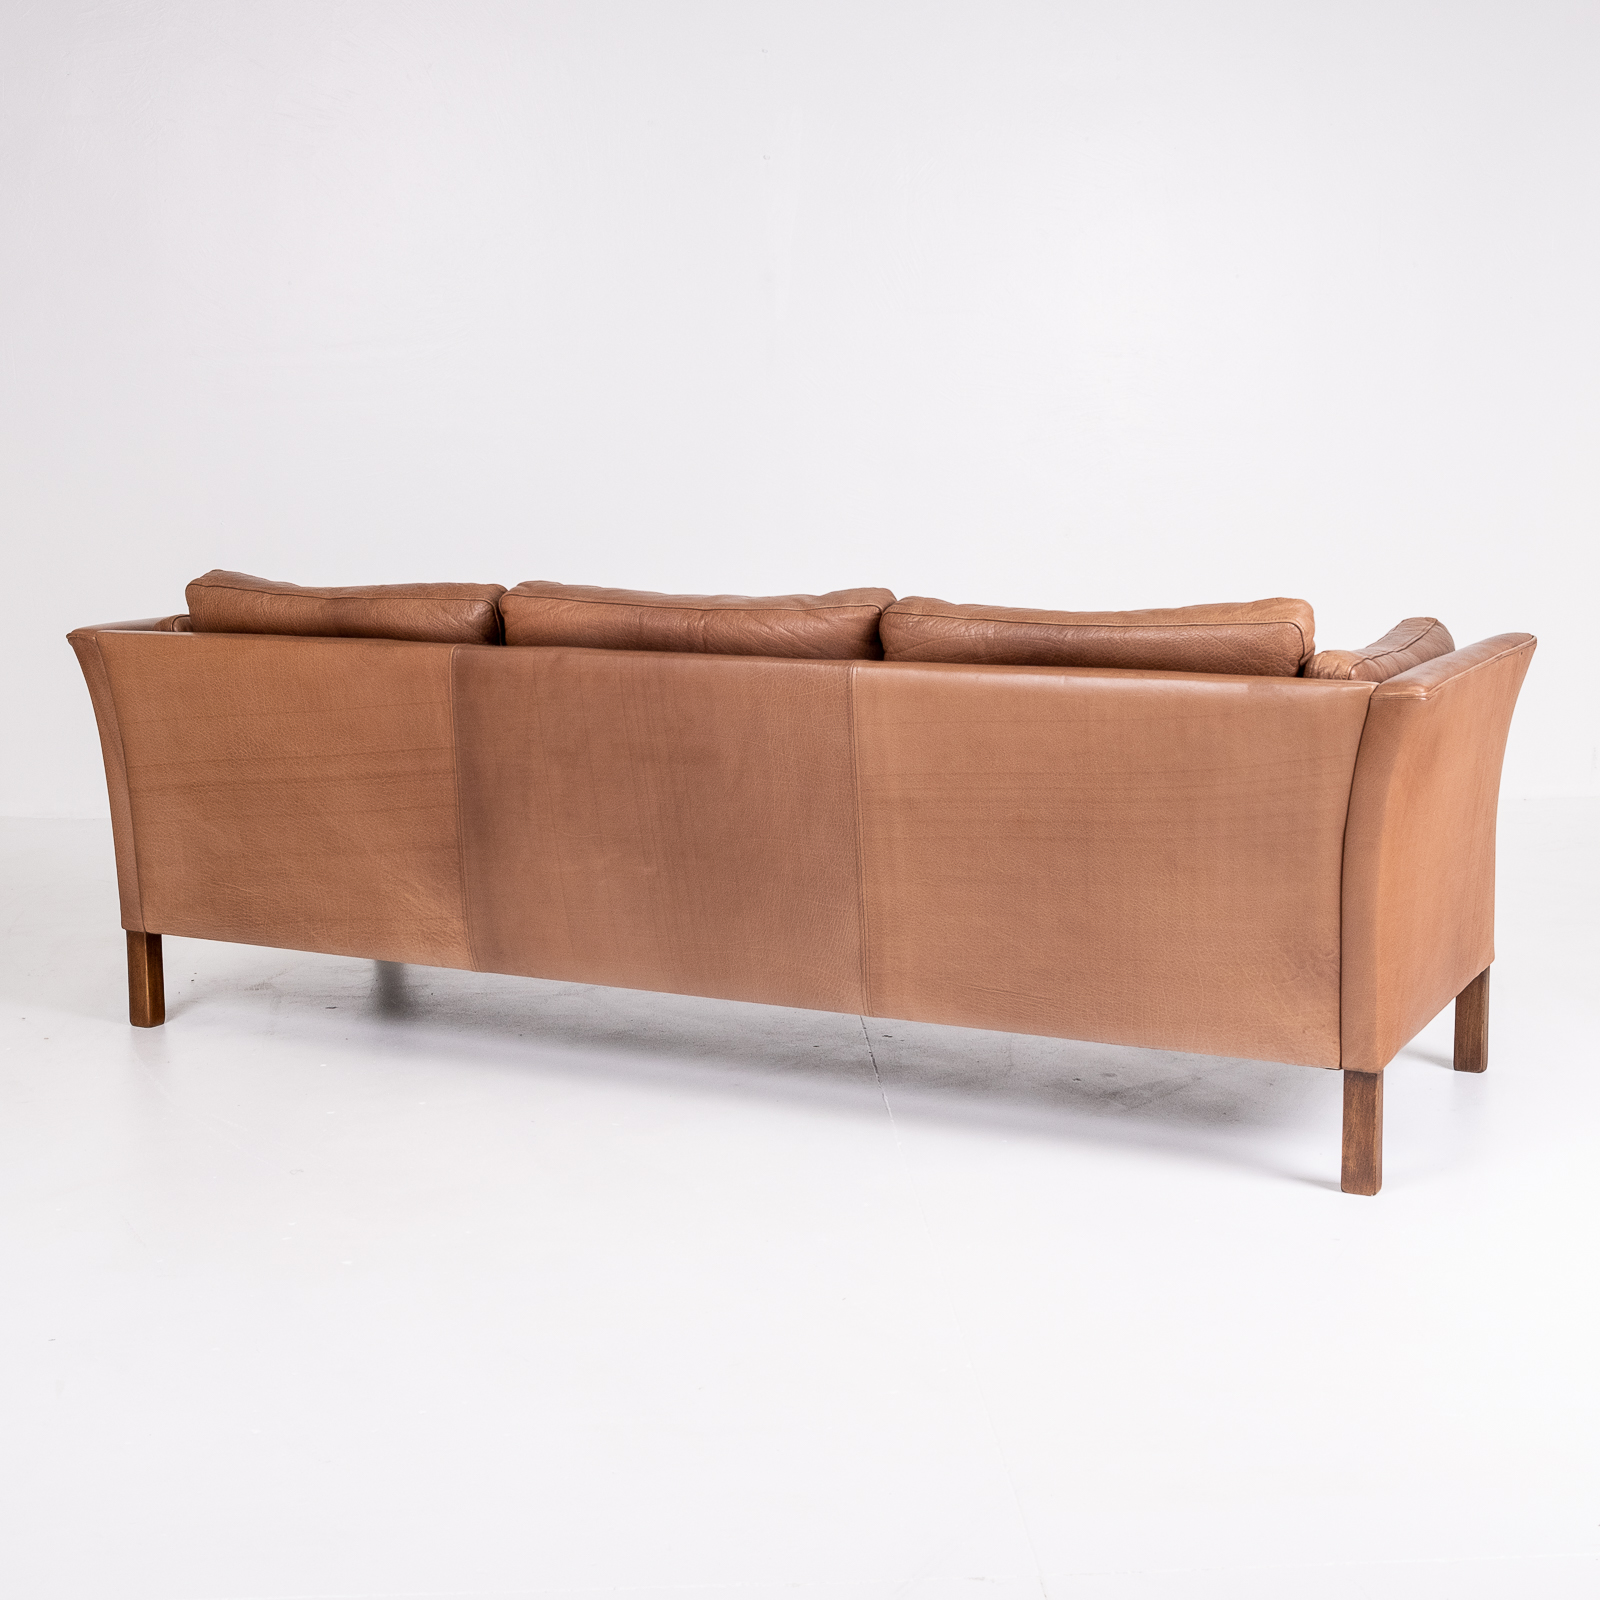 3 Seat Sofa In Brown Leather, 1960s, Denmark06